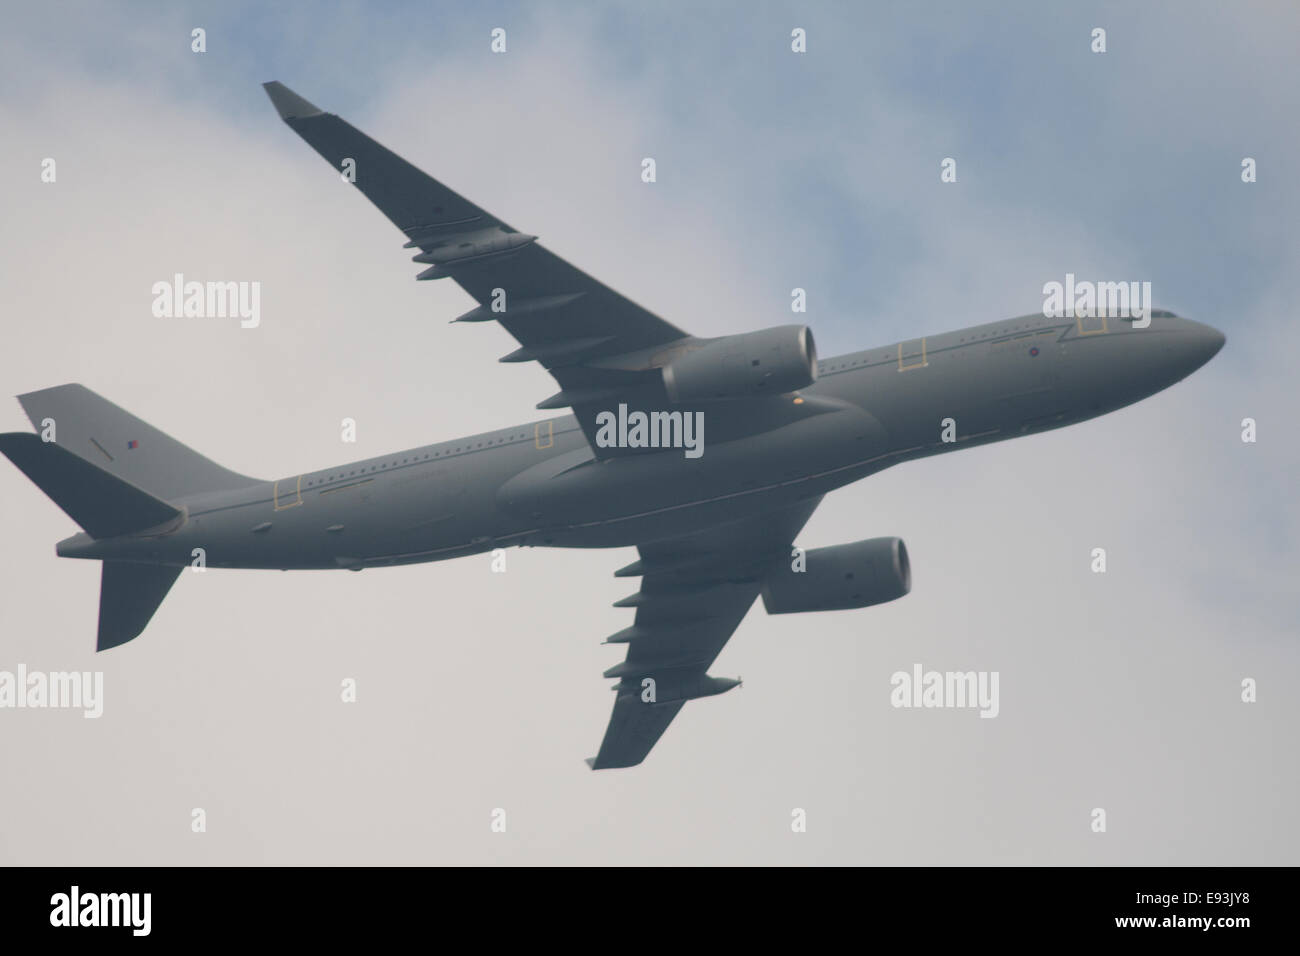 RAF Voyager, the new airborne refuelling tanker plane flying over Cardiff Bay during the 2014 NATO summit meeting. - Stock Image